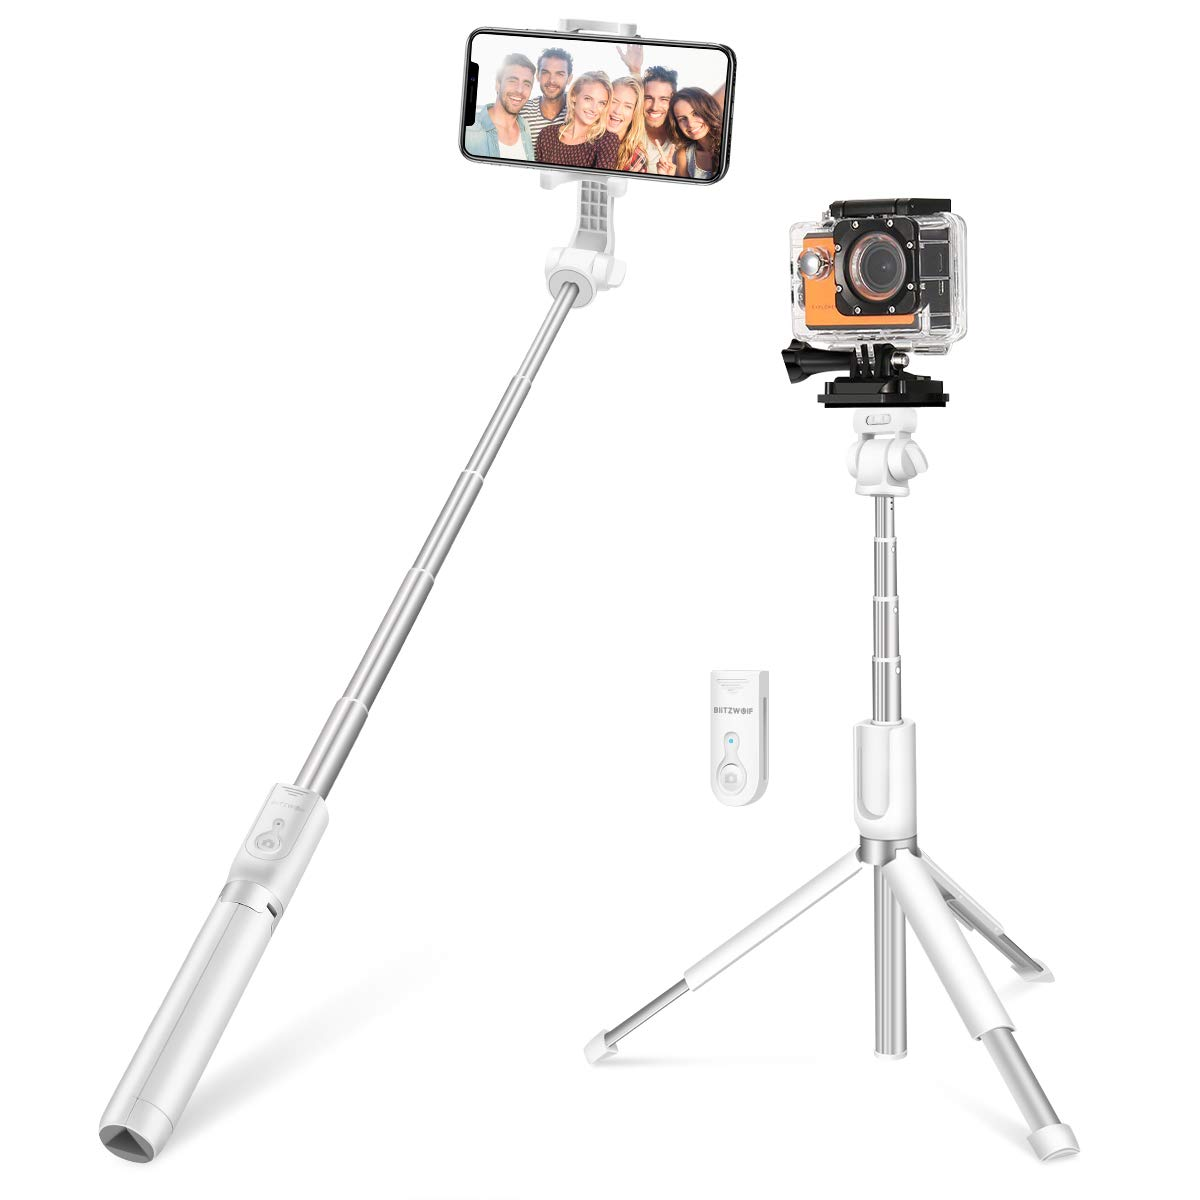 Selfie Stick for Cameras, Gopro, iPhone, Android - BlitzWolf 5 in 1 32 inch Extendable Bluetooth Selfie Stick Tripod with Wireless Remote Black (Upgraded Version) BW-BS5-B